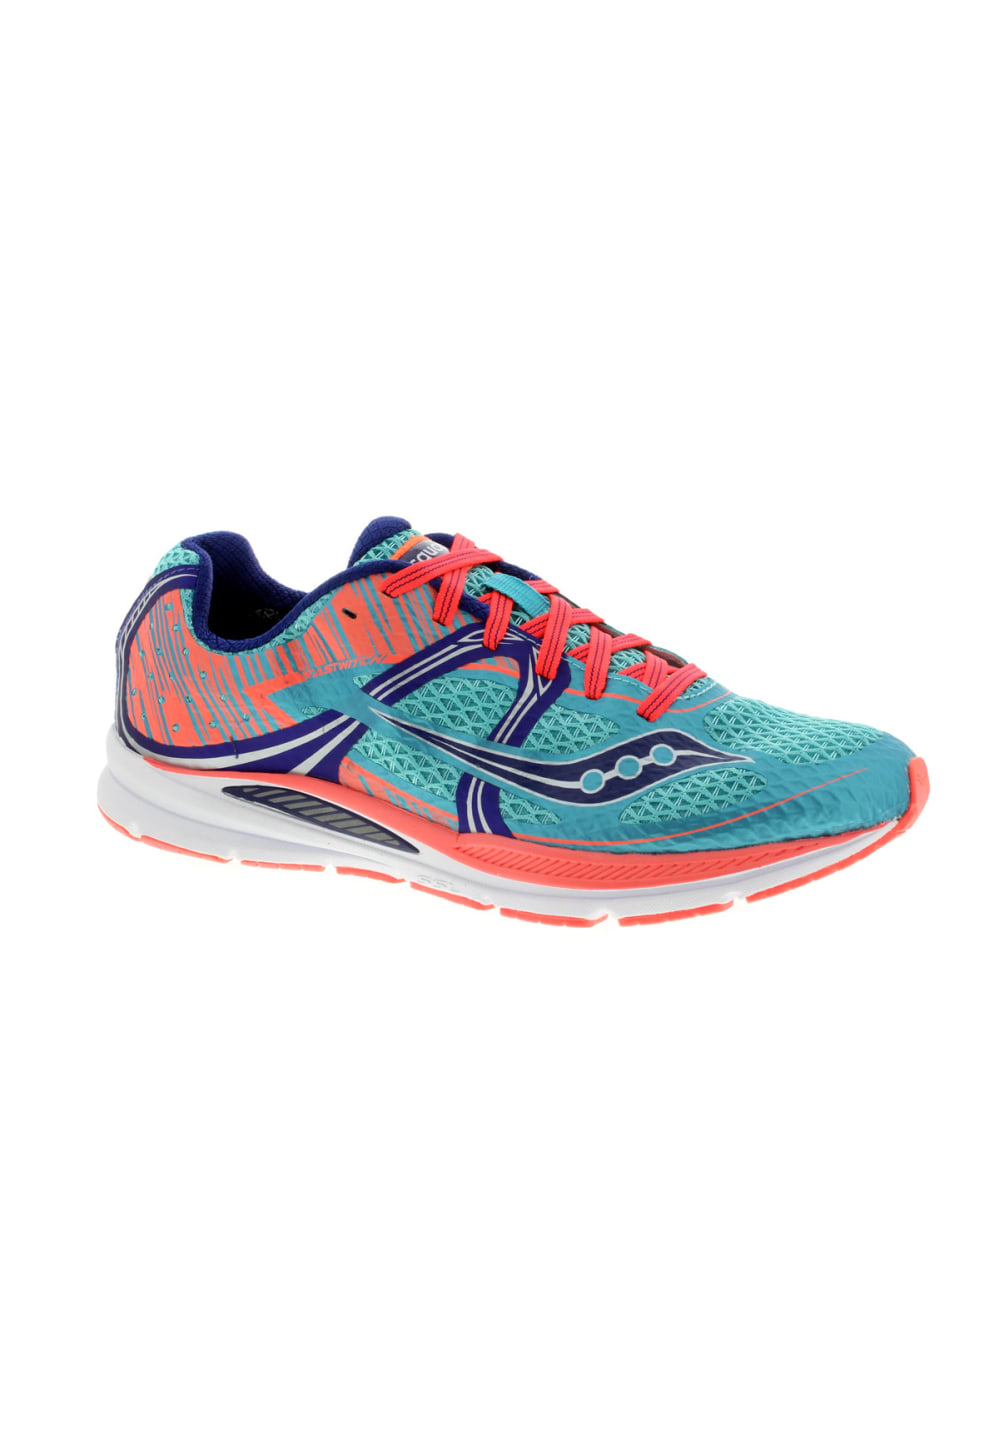 cheap for discount 775f1 3cf8d Saucony Fastwitch 7 - Running shoes for Women - Blue